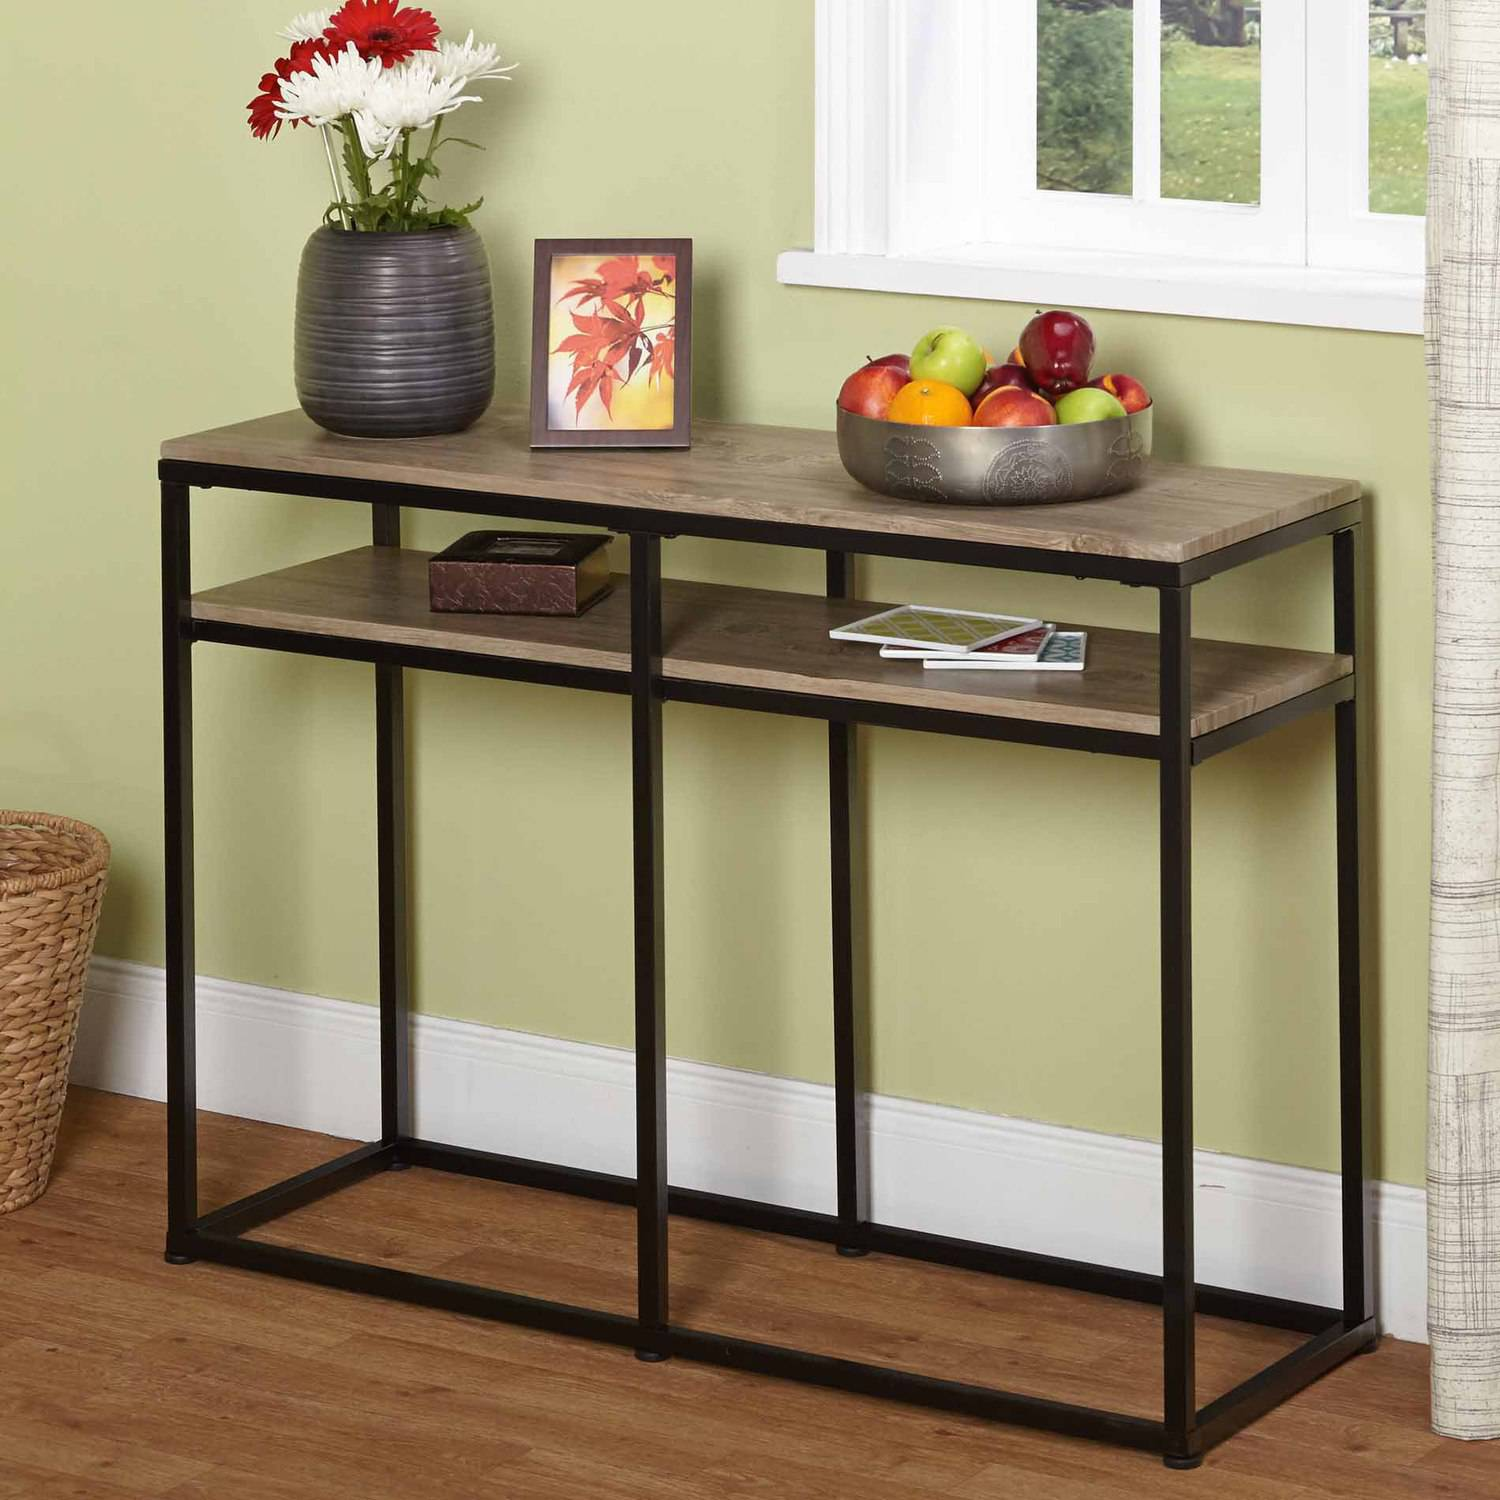 vie occasional sofa table, 60005nat - walmart